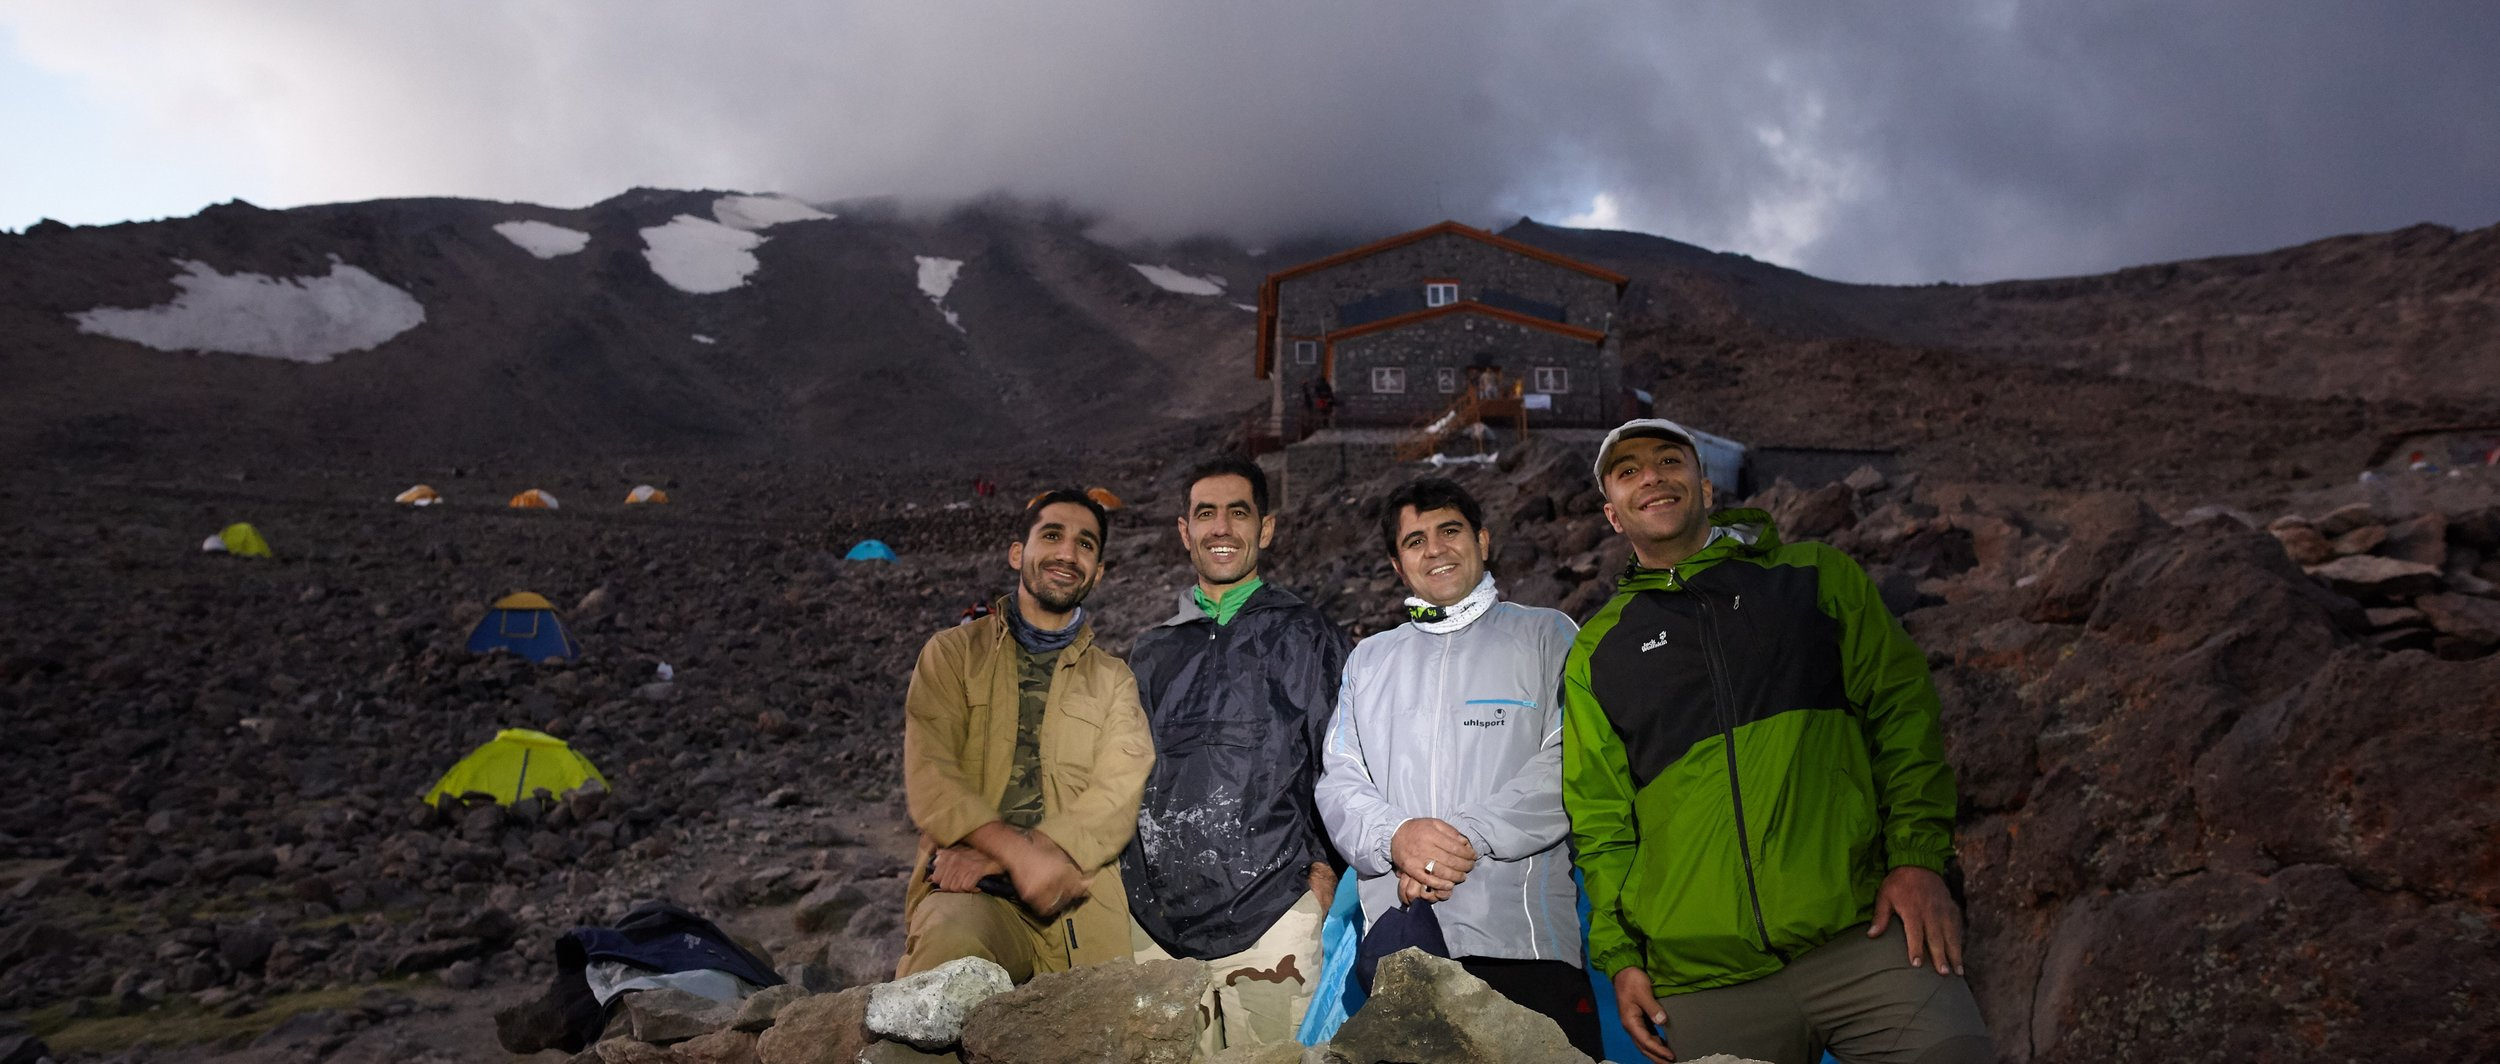 Teacher, Police Office, Hospital stuff and Government officer - all friends together at Base Camp, Mt. Damavand, Iran